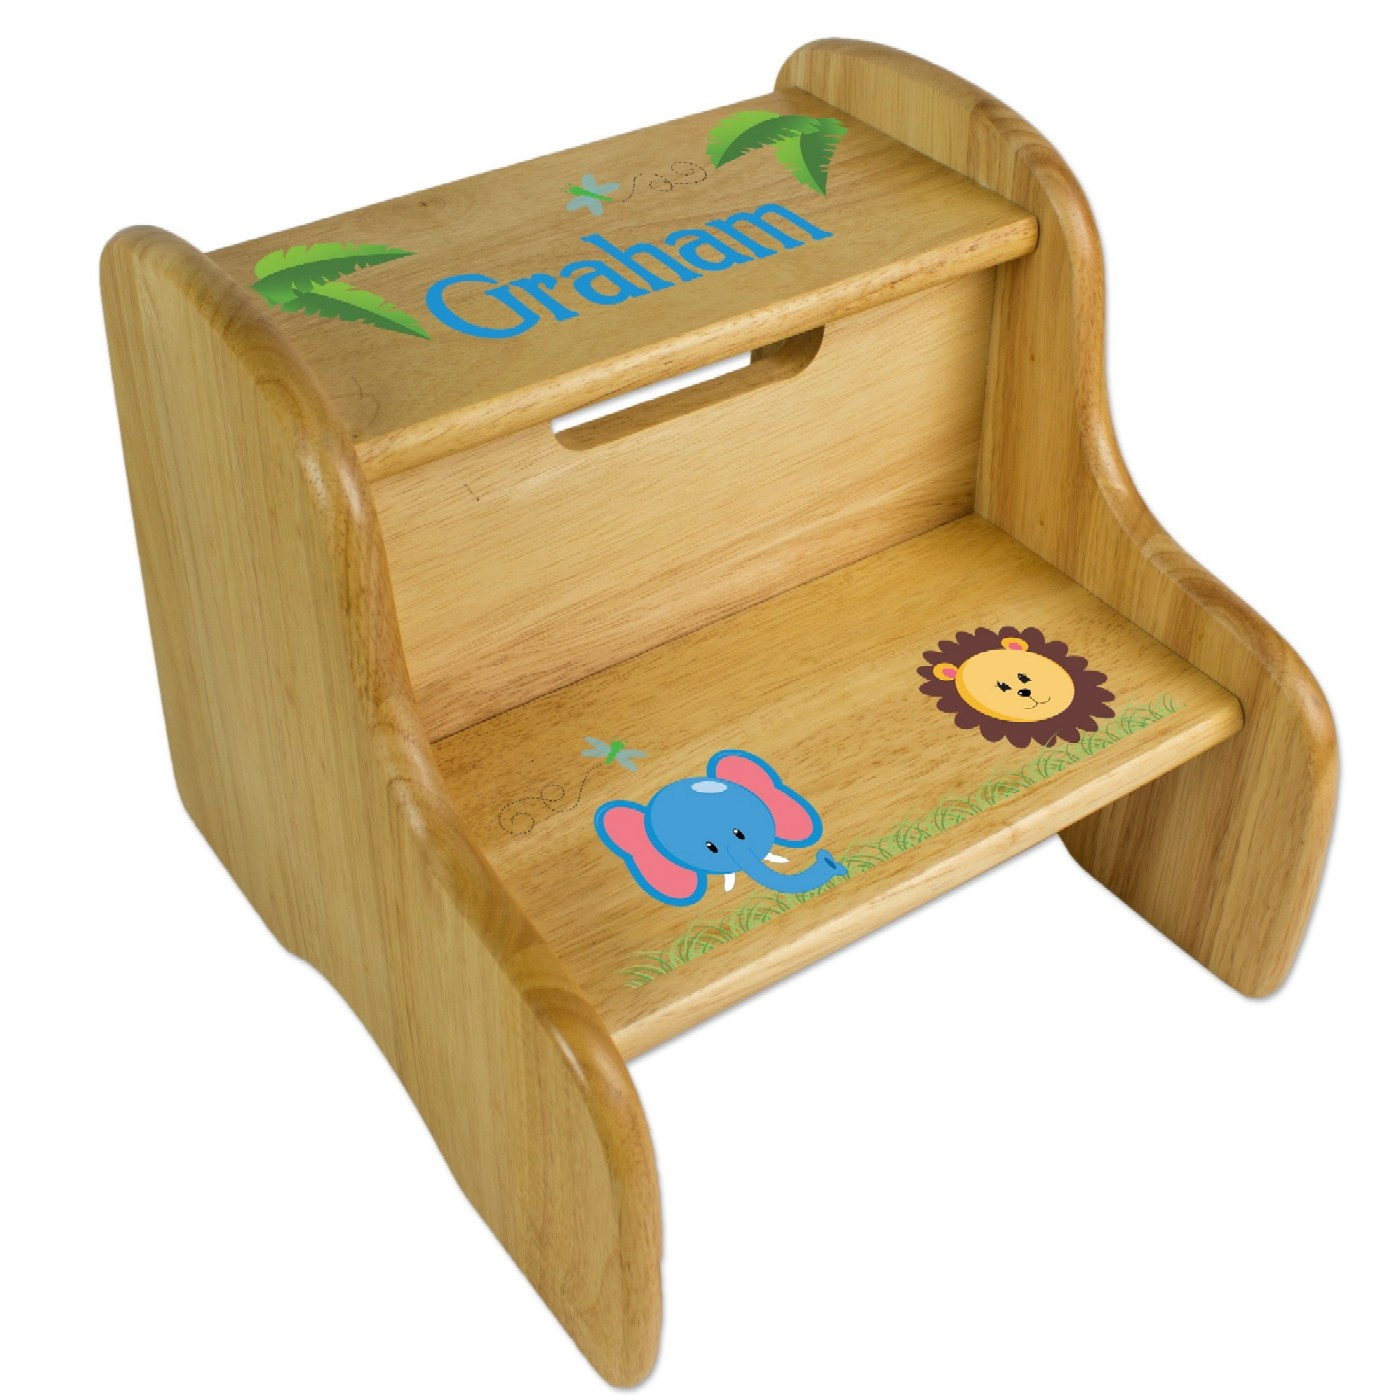 Baby step stool personalized with name